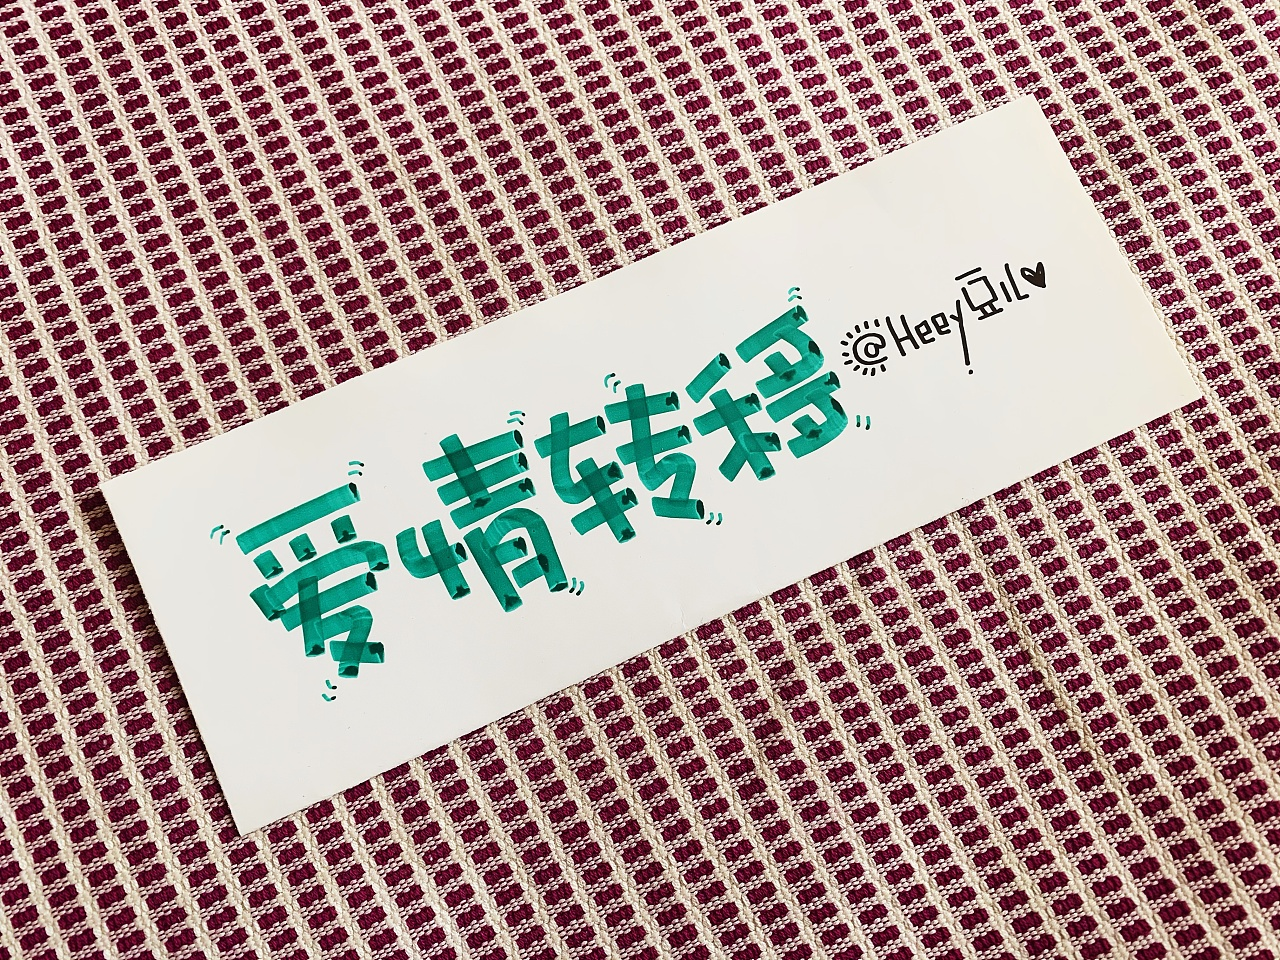 Chinese Creative Font Design-Mark Pen (Chen Yixun's Song)